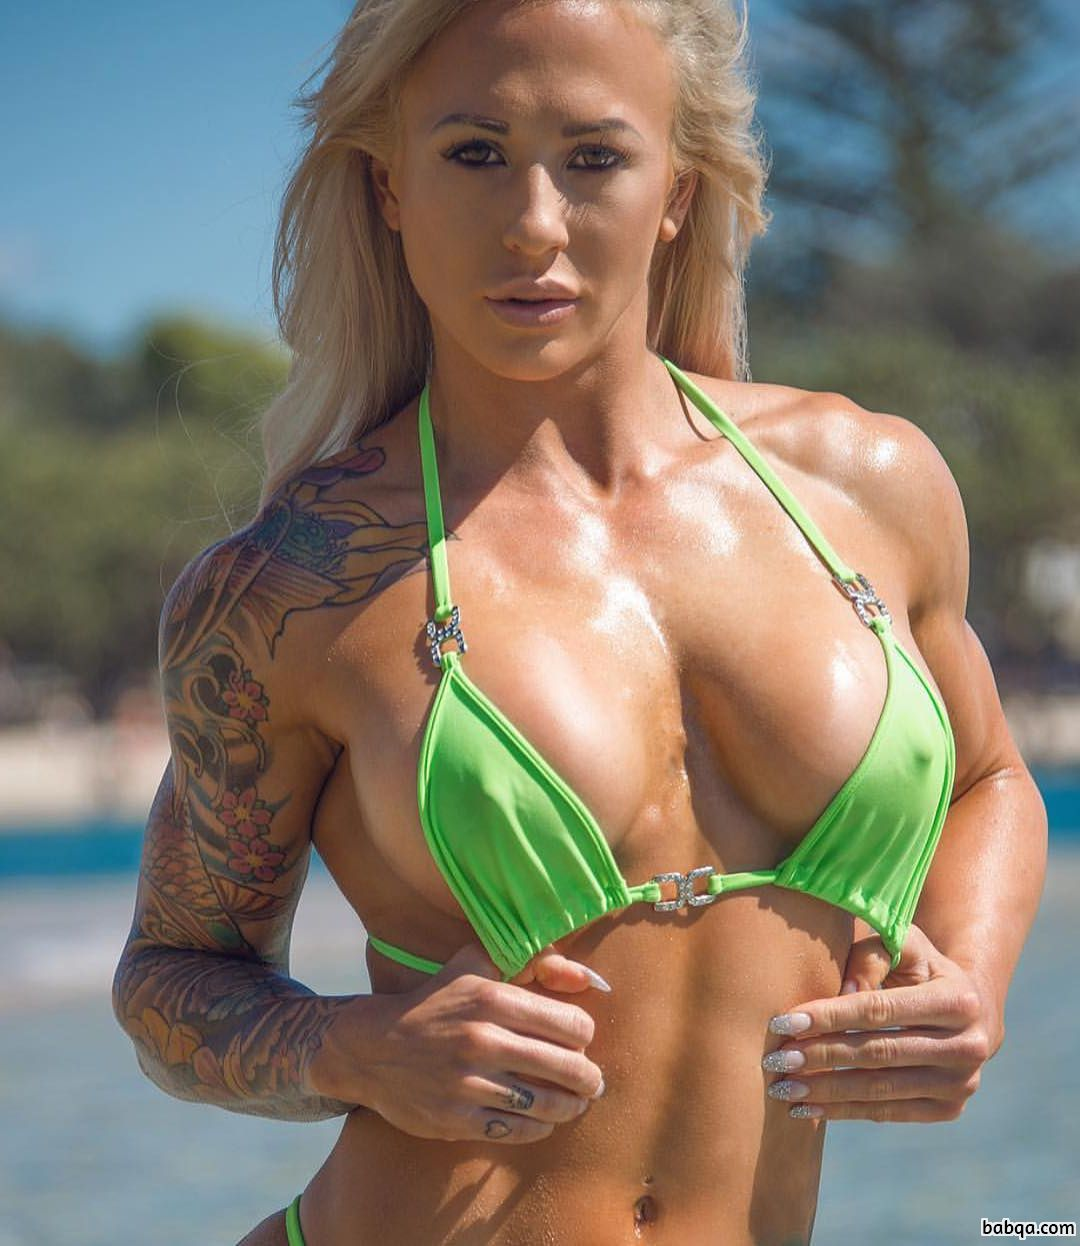 awesome babe with fitness body and toned biceps post from flickr